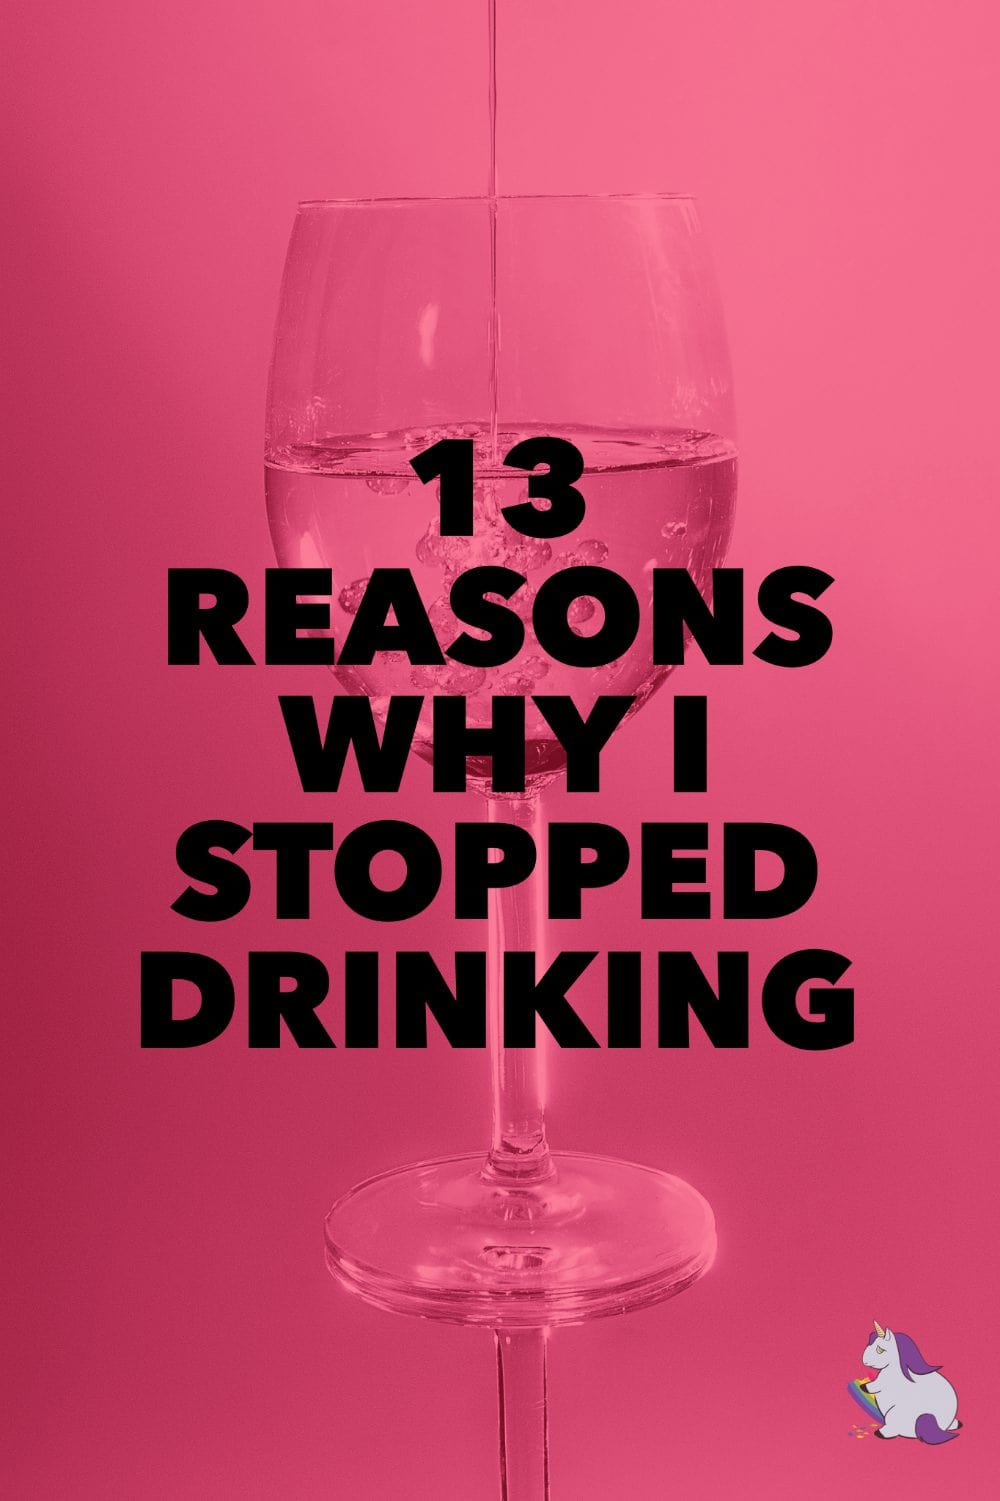 13 Reasons Why I Stopped Drinking